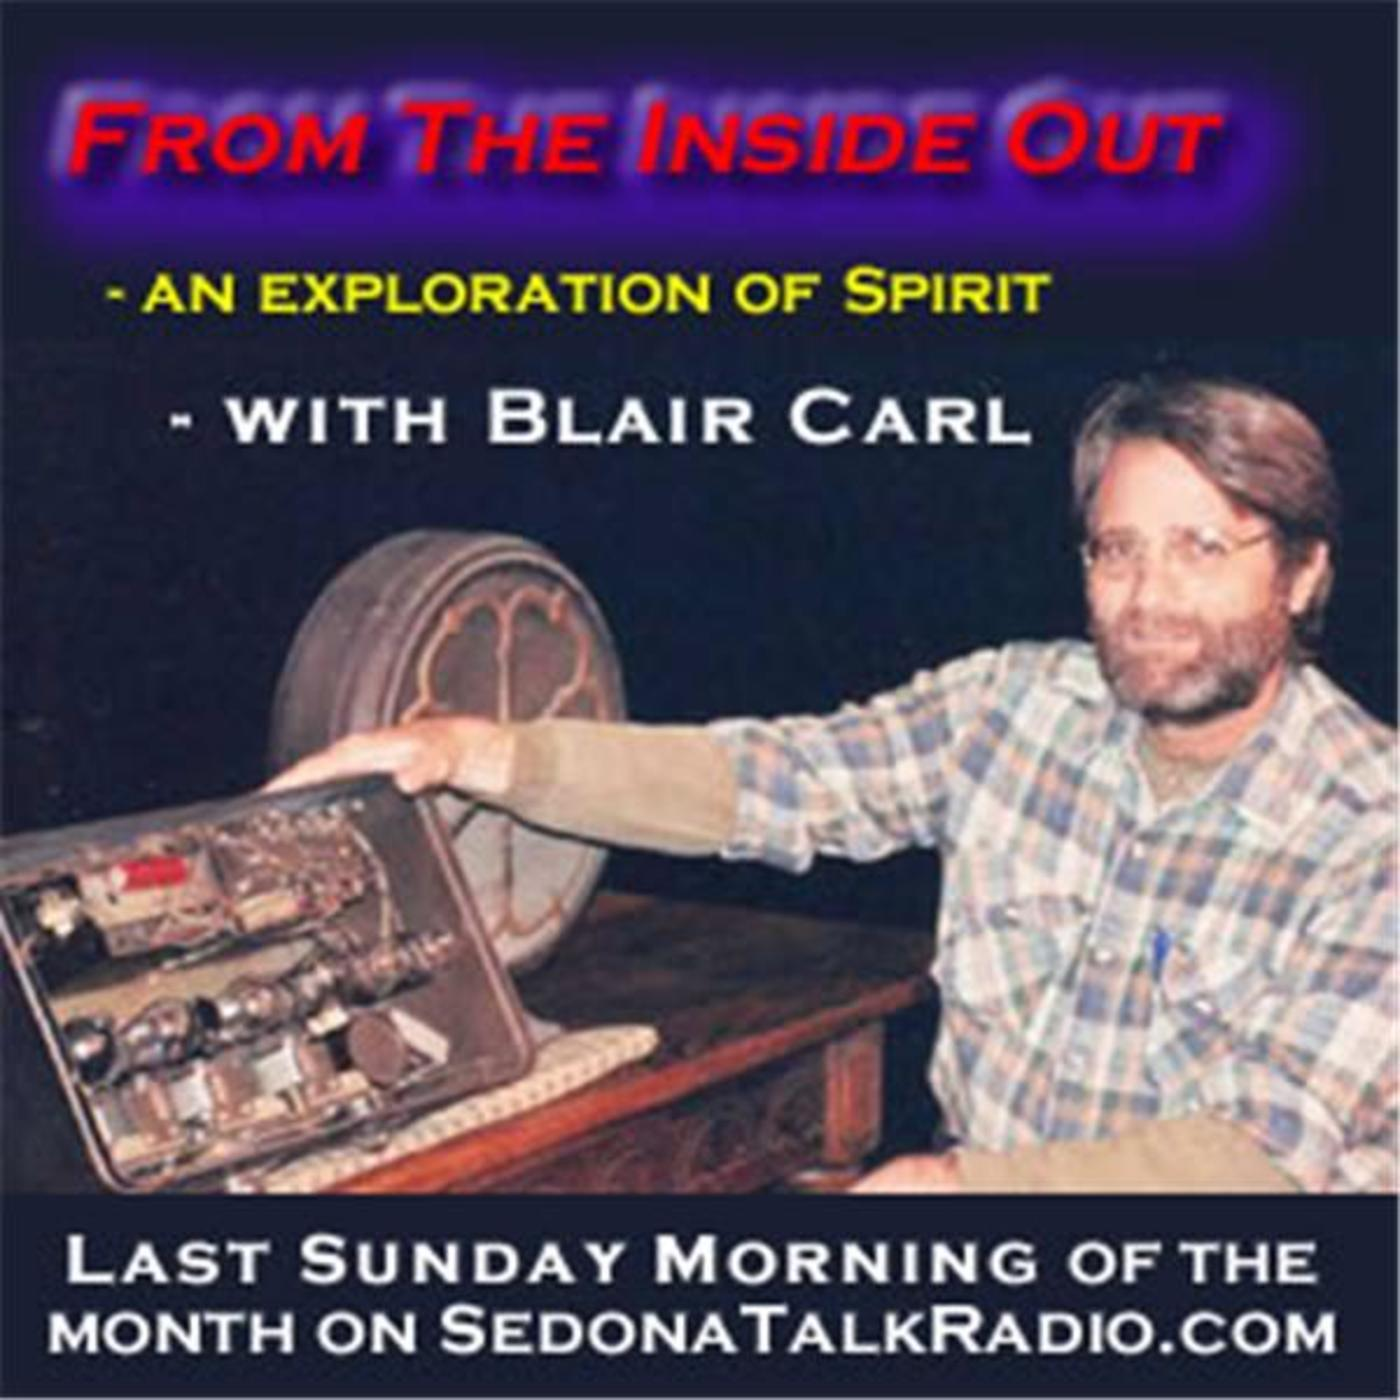 From The Inside Out - an exploration of Spirit with Blair Carl